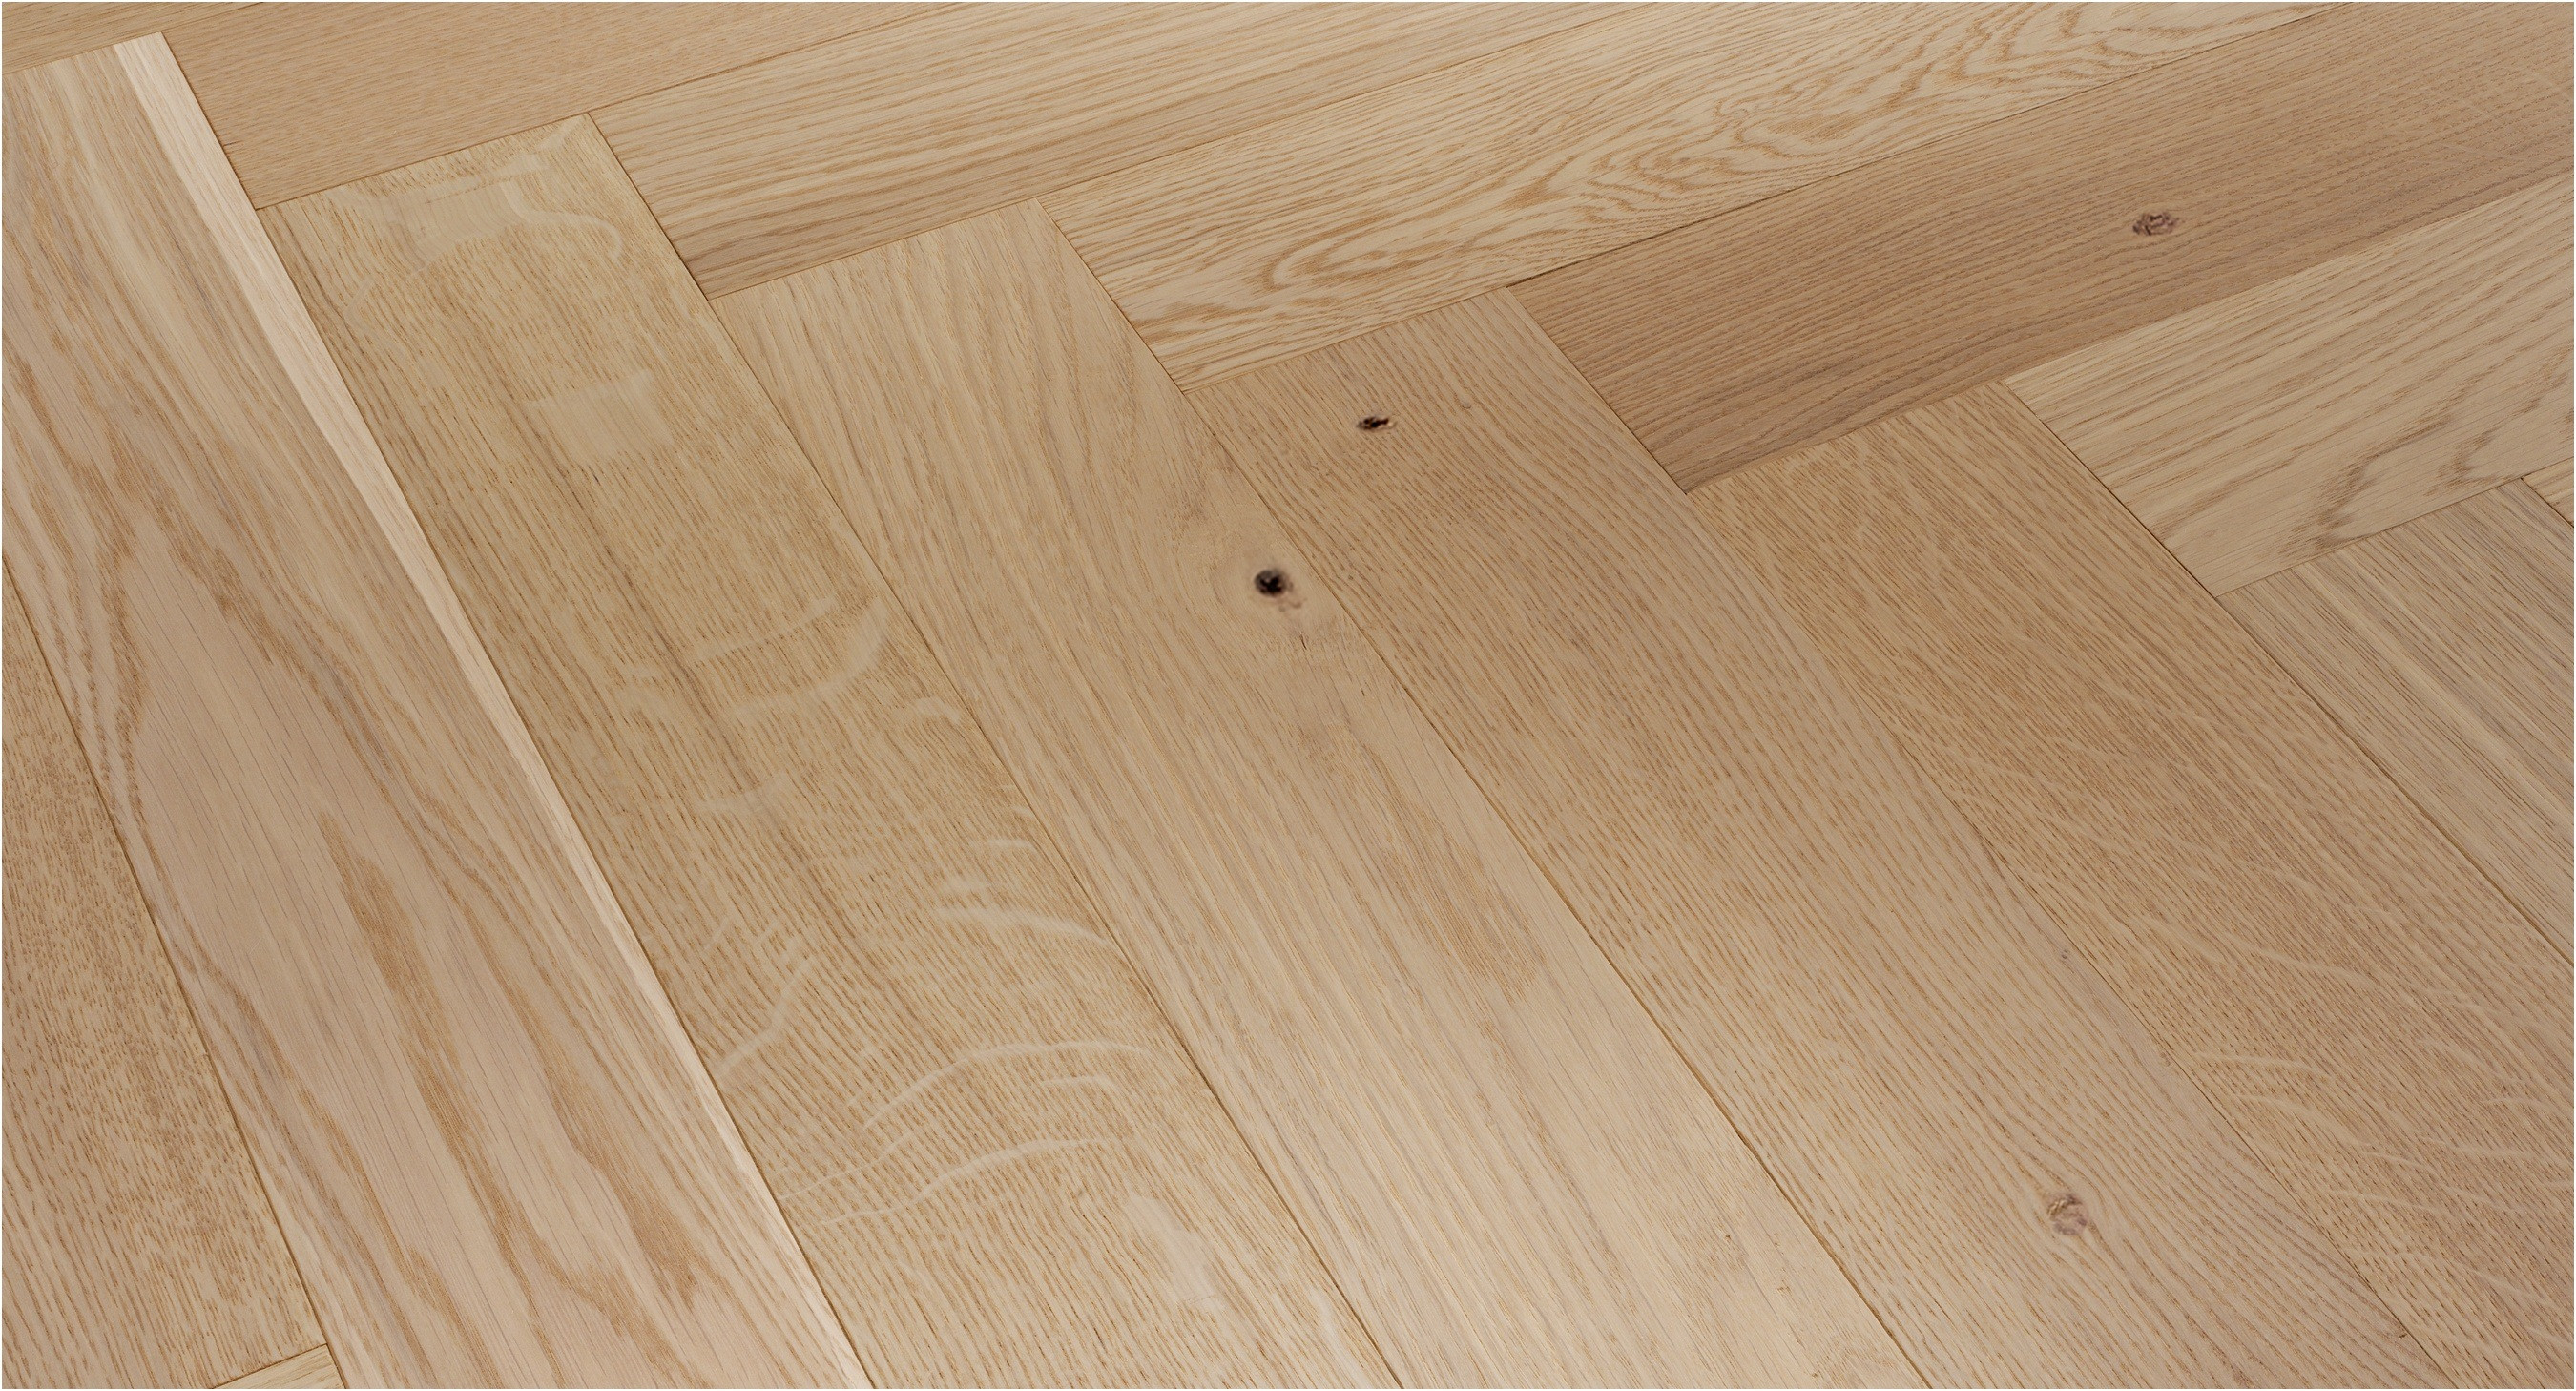 What Type Of Hardwood Floor Do I Have Of 30 Inspirational Laminate Flooring Transition Photos Flooring within Laminate Flooring Transition Luxury the Flooring Place Best Place for Laminate Flooring Stock 0d Grace Pictures